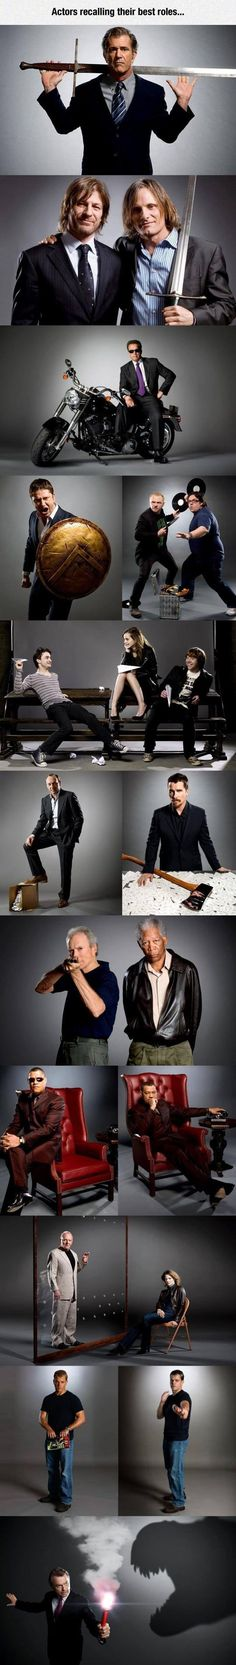 Actors recreating their best roles.